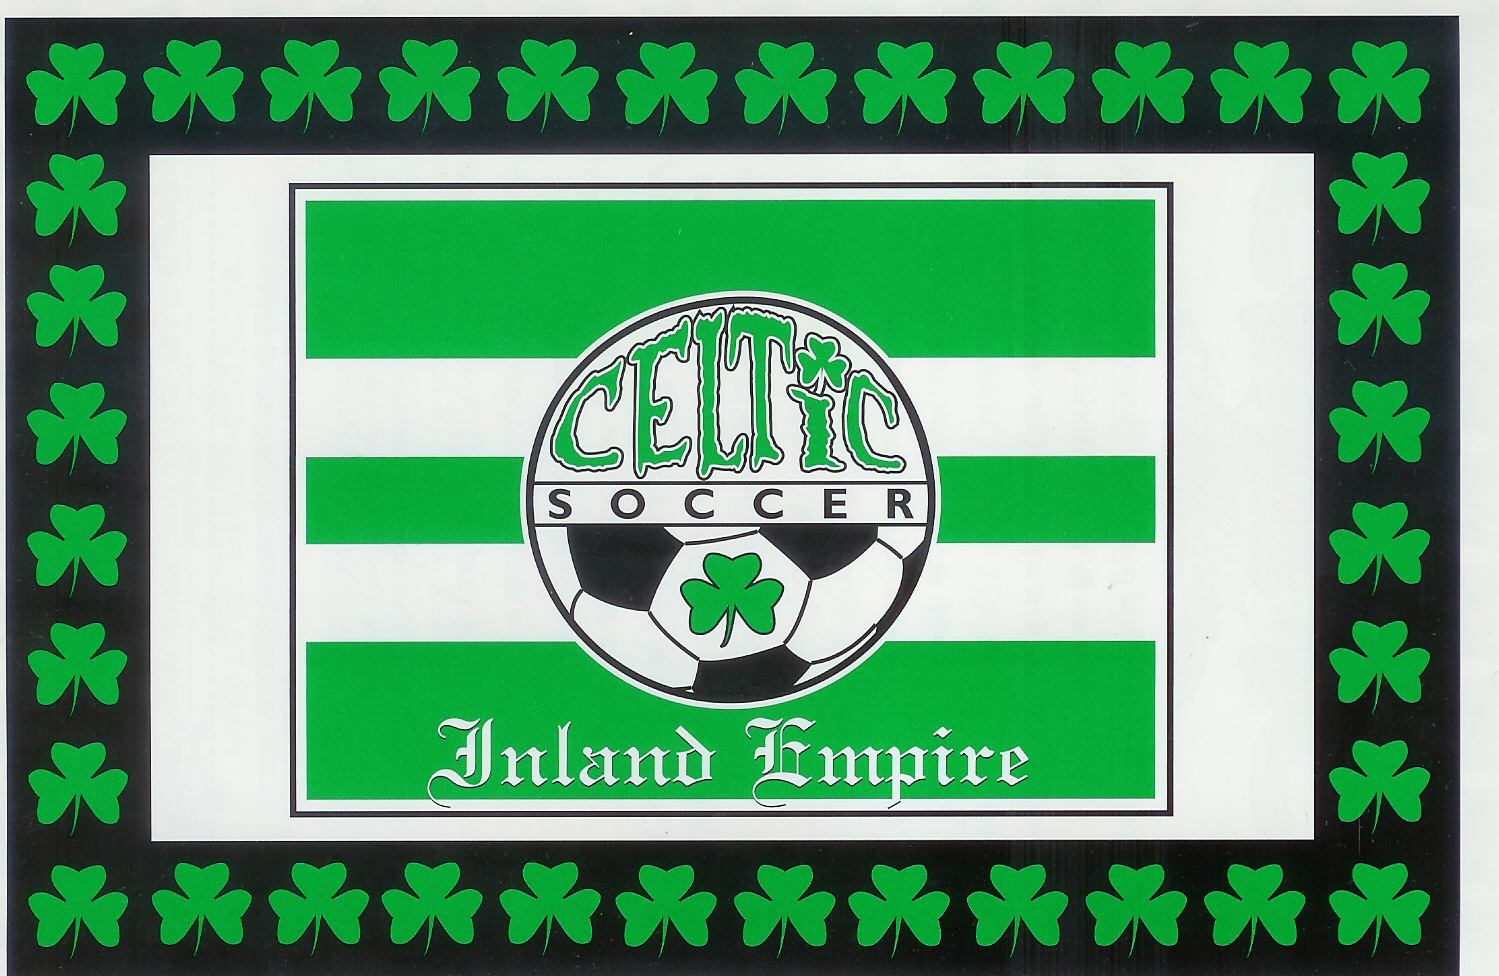 Celtic Harps U9 Boys